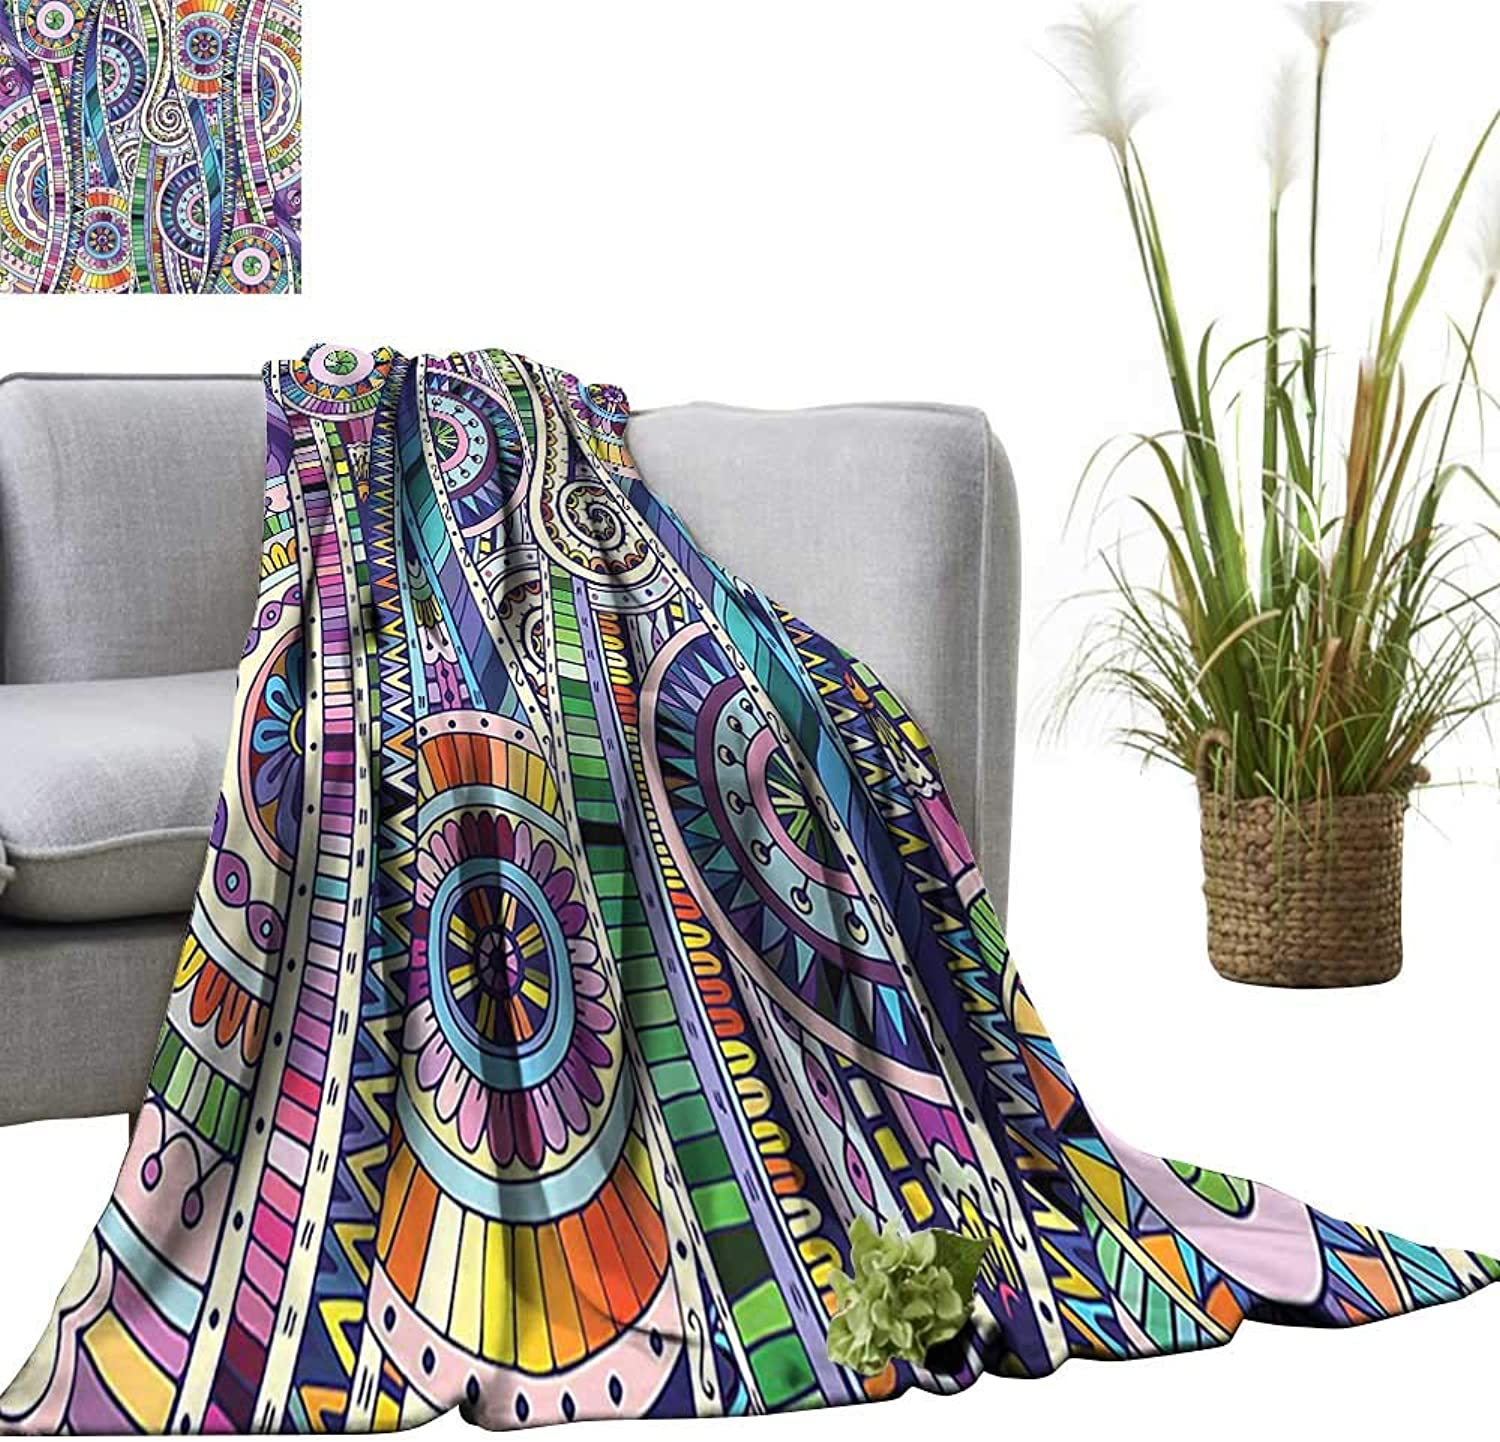 YOYI Baby Blanket Mosaic Style colorful Illustration Flower Pattern Ornamental Doodle Native Art Purple Gree Indoor Outdoor, Comfortable for All Seasons 50 x70